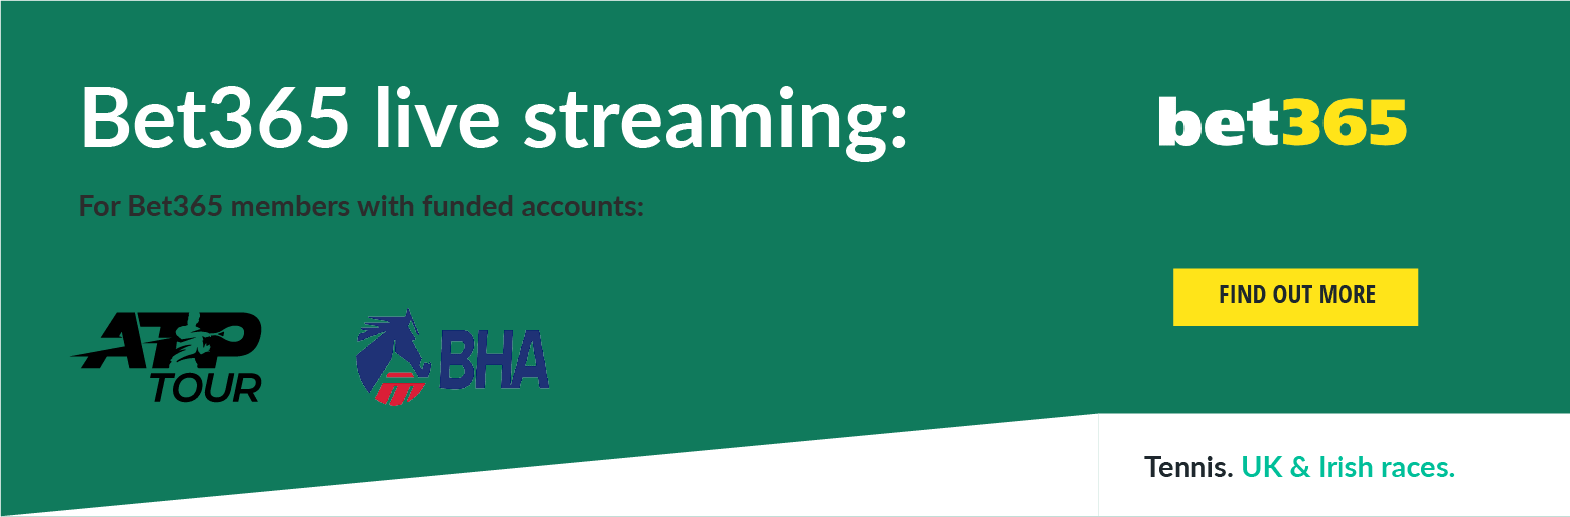 infographic that explains Bet365 live streaming and how members can watch live vision for free